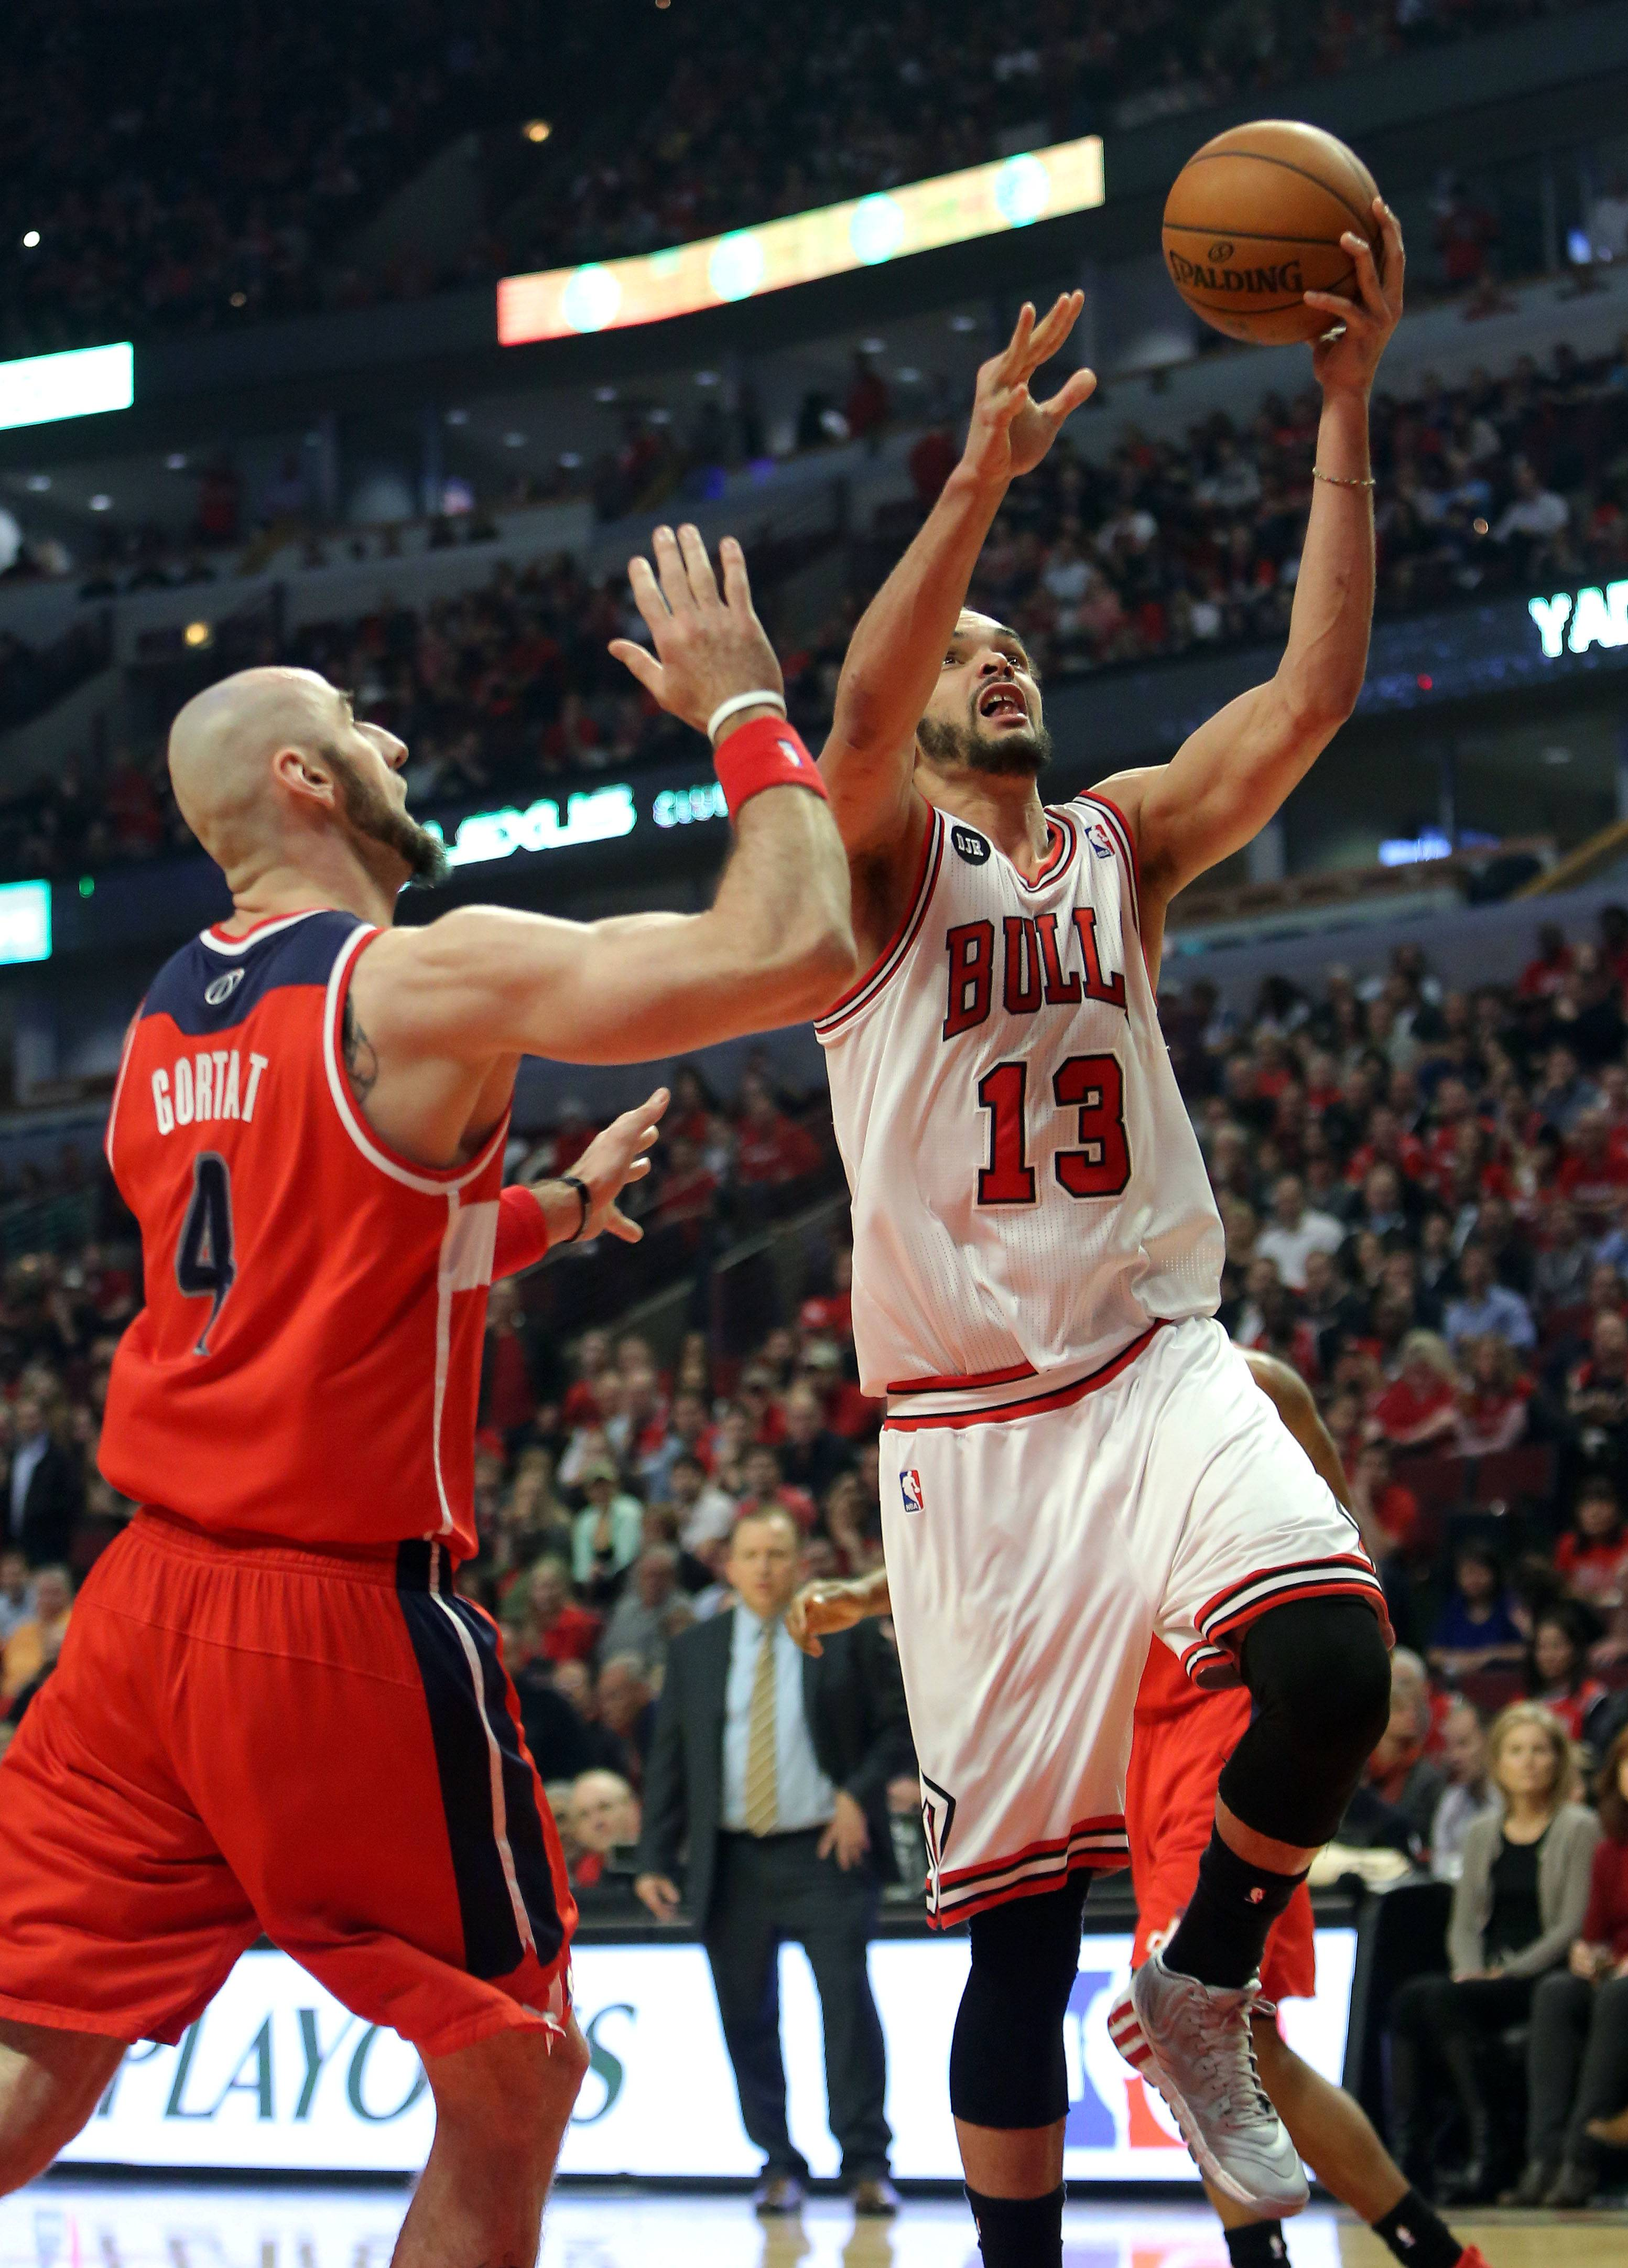 Chicago Bulls center Joakim Noah drives on Washington Wizards center Marcin Gortat .